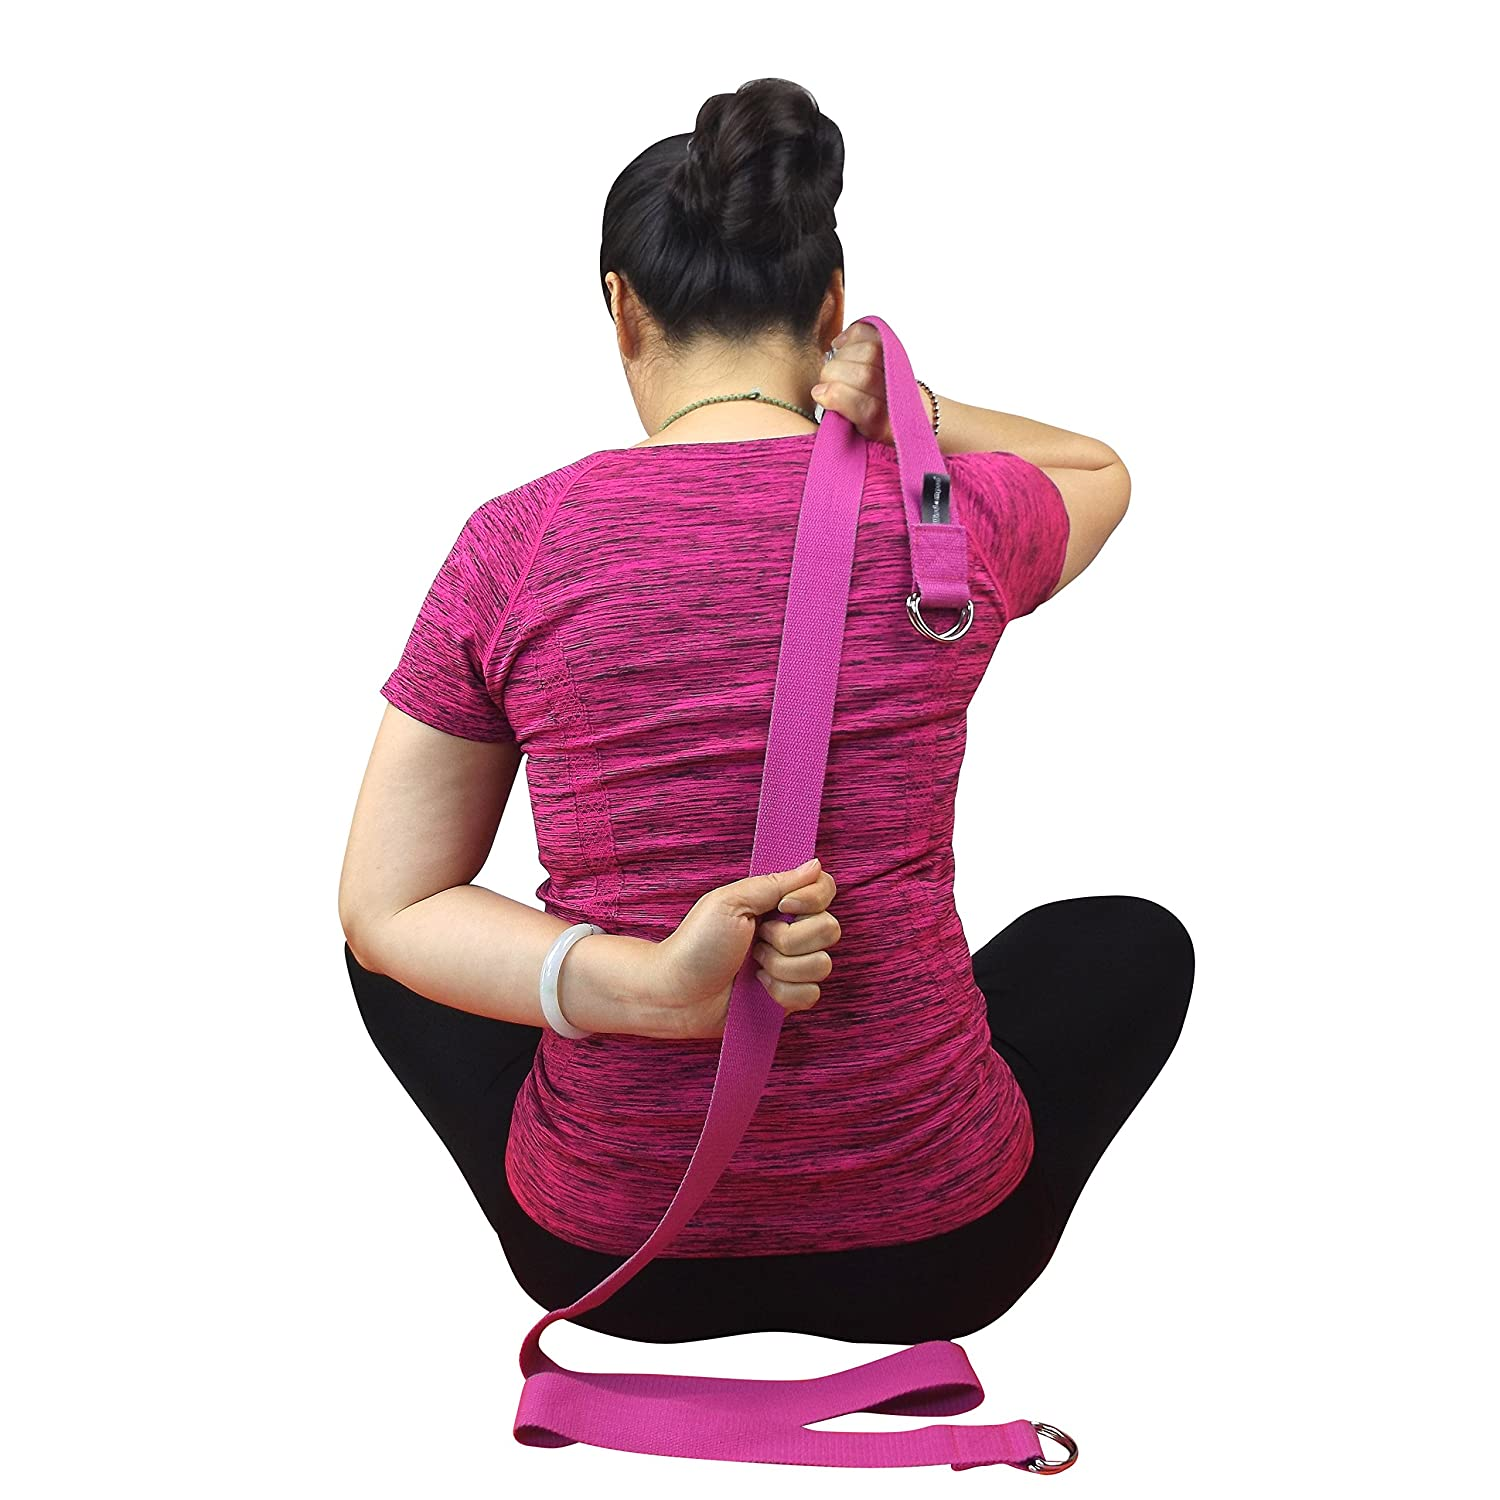 A 2-in-1 Extra Value Combination Wisdompro Yoga Strap for Stretching and Posing Doubles as A Yoga Exercise Mat Carrier Sling with 4 D-Rings